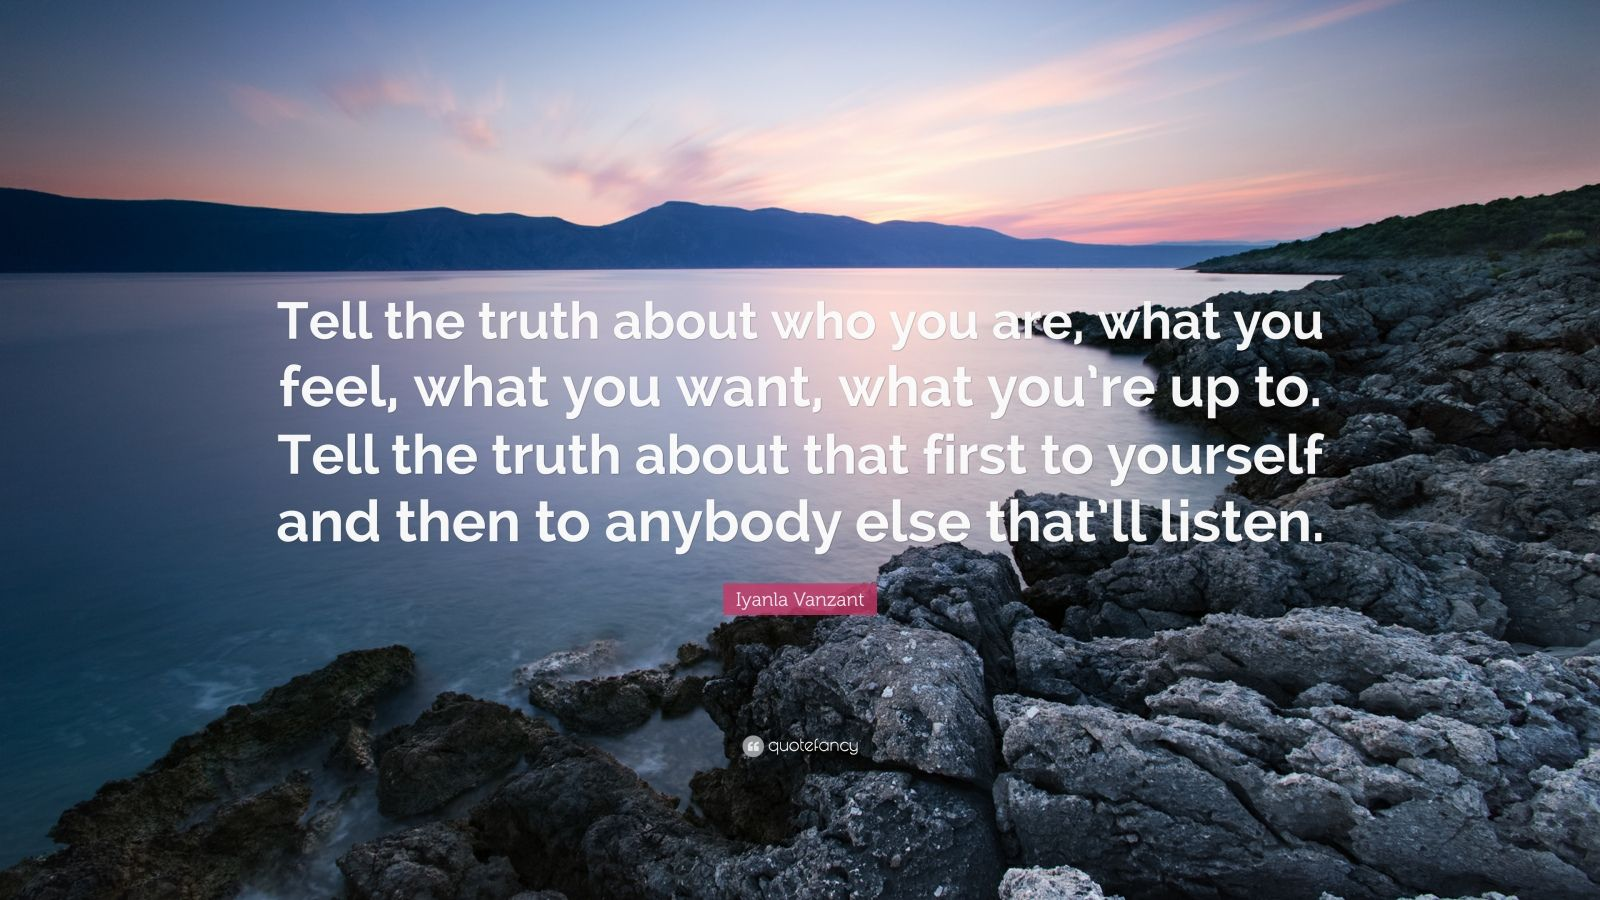 """Iyanla Vanzant Quote: """"Tell the truth about who you are, what you feel, what you want, what you're up to. Tell the truth about that first to yourself and then to anybody else that'll listen."""""""